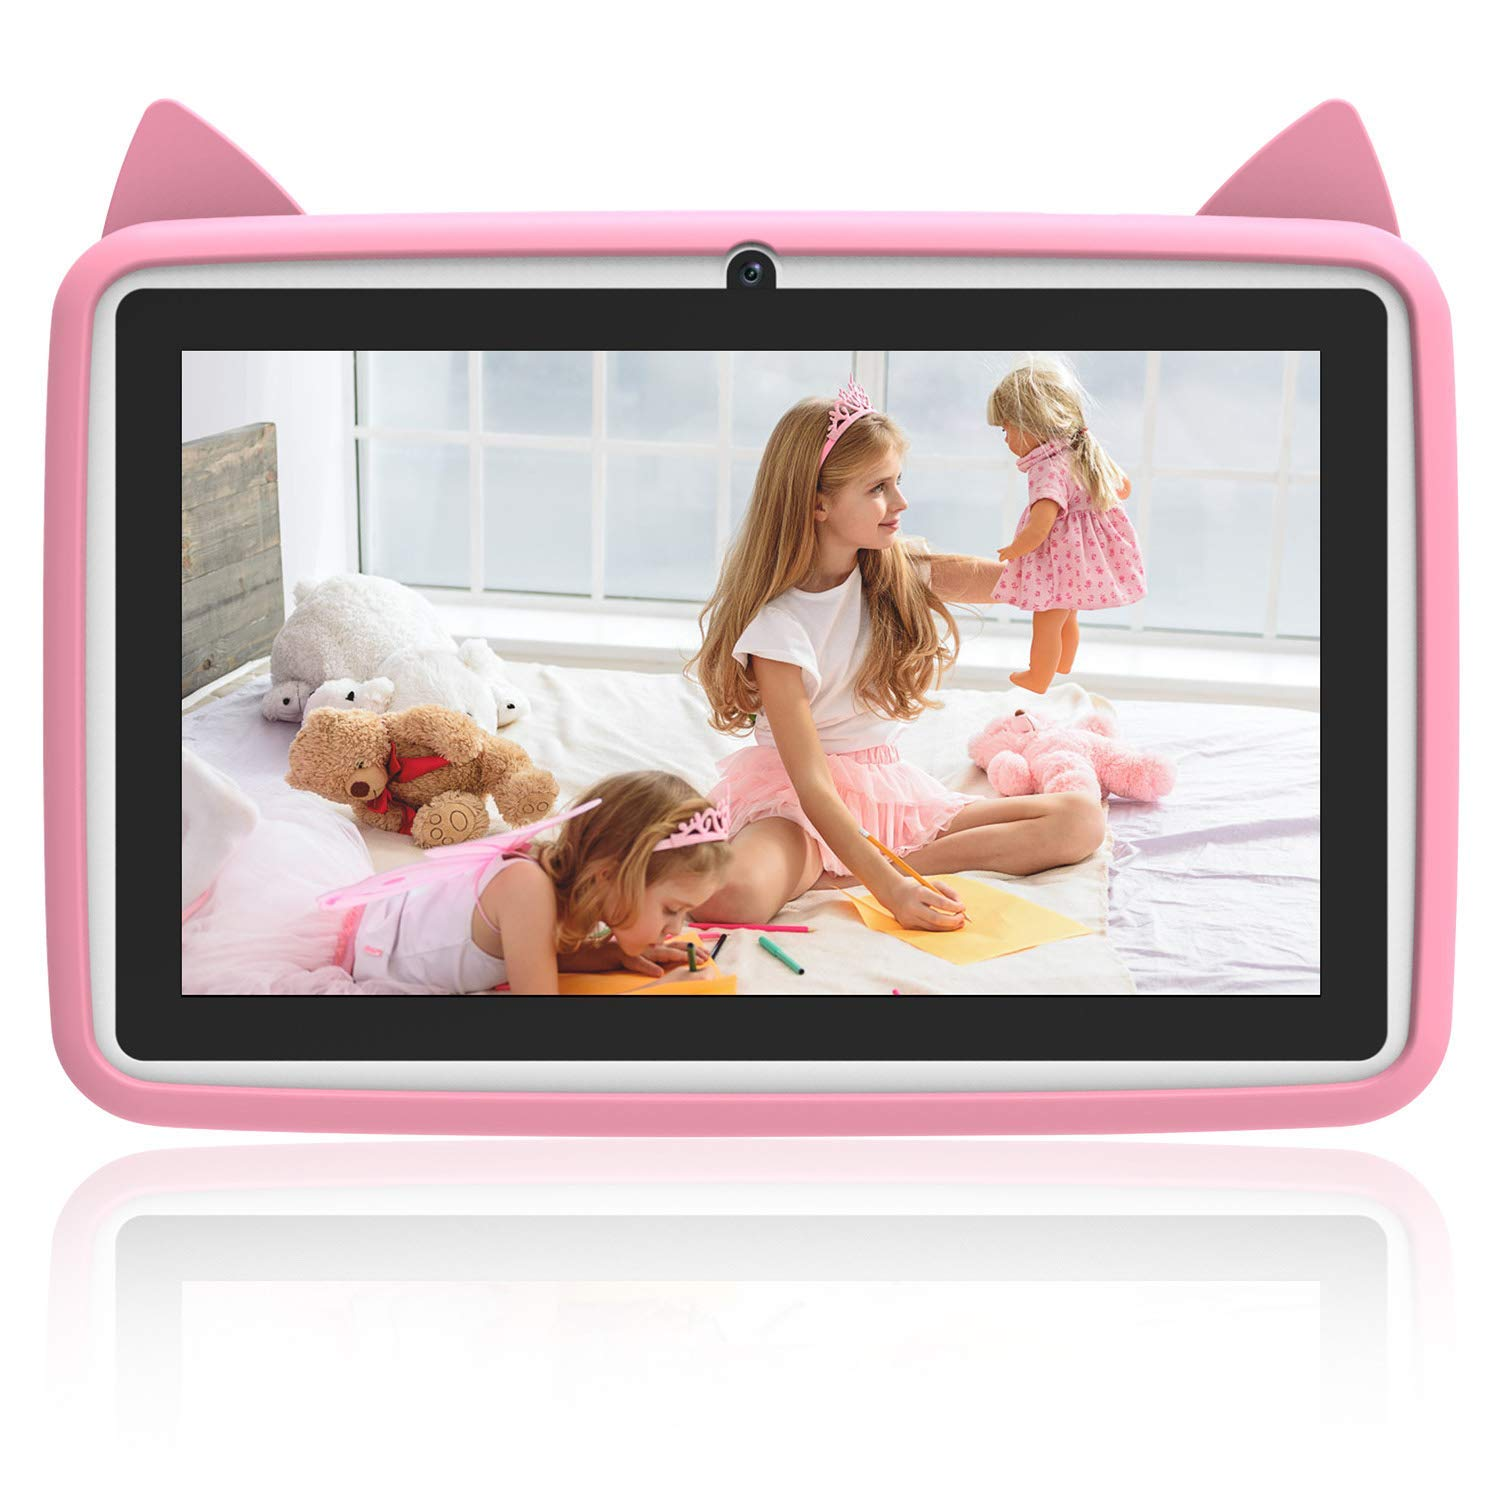 Roll Over Image to Zoom in DUODUOGO Kids Tablets with 7 inch Multi-Touch Screen IPS Display,2GB RAM 32GB ROM, Unlocked Android 6.0 Quad-core Tablet PC, Dual Camera Wi-Fi Bluetooth Edition Tab (Pink)